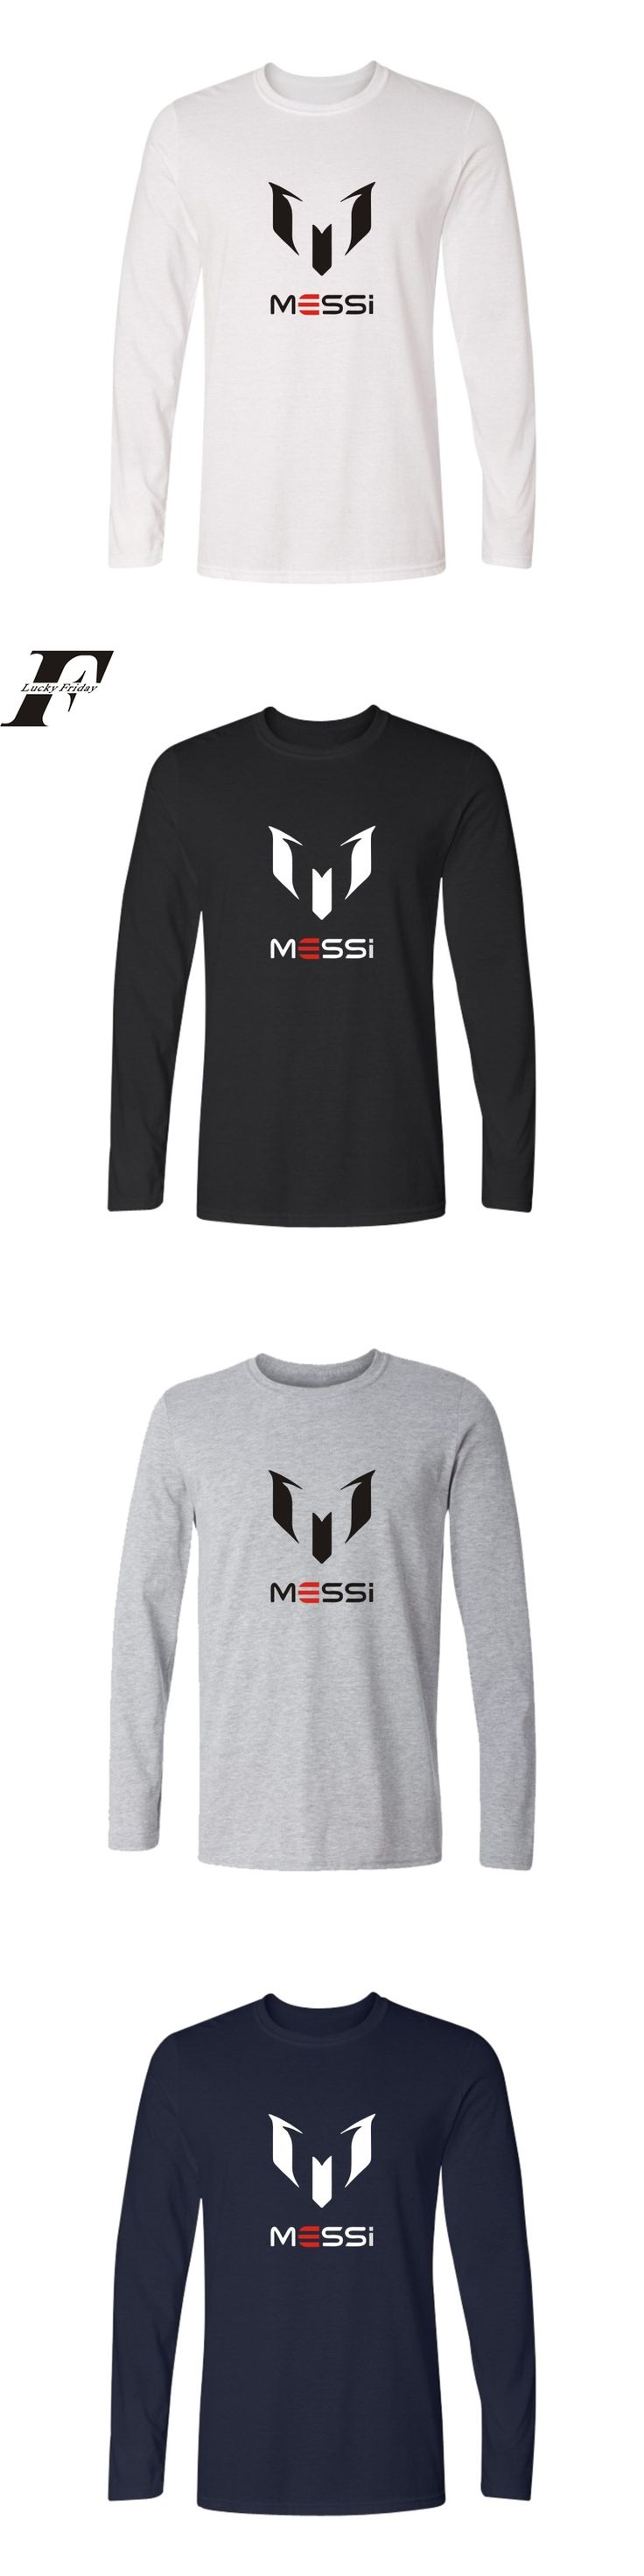 MESSI spring autumn funny brand cotton Barcelona Men t-shirt tops Man casual long sleeve t shirts Plus Size new fashion top